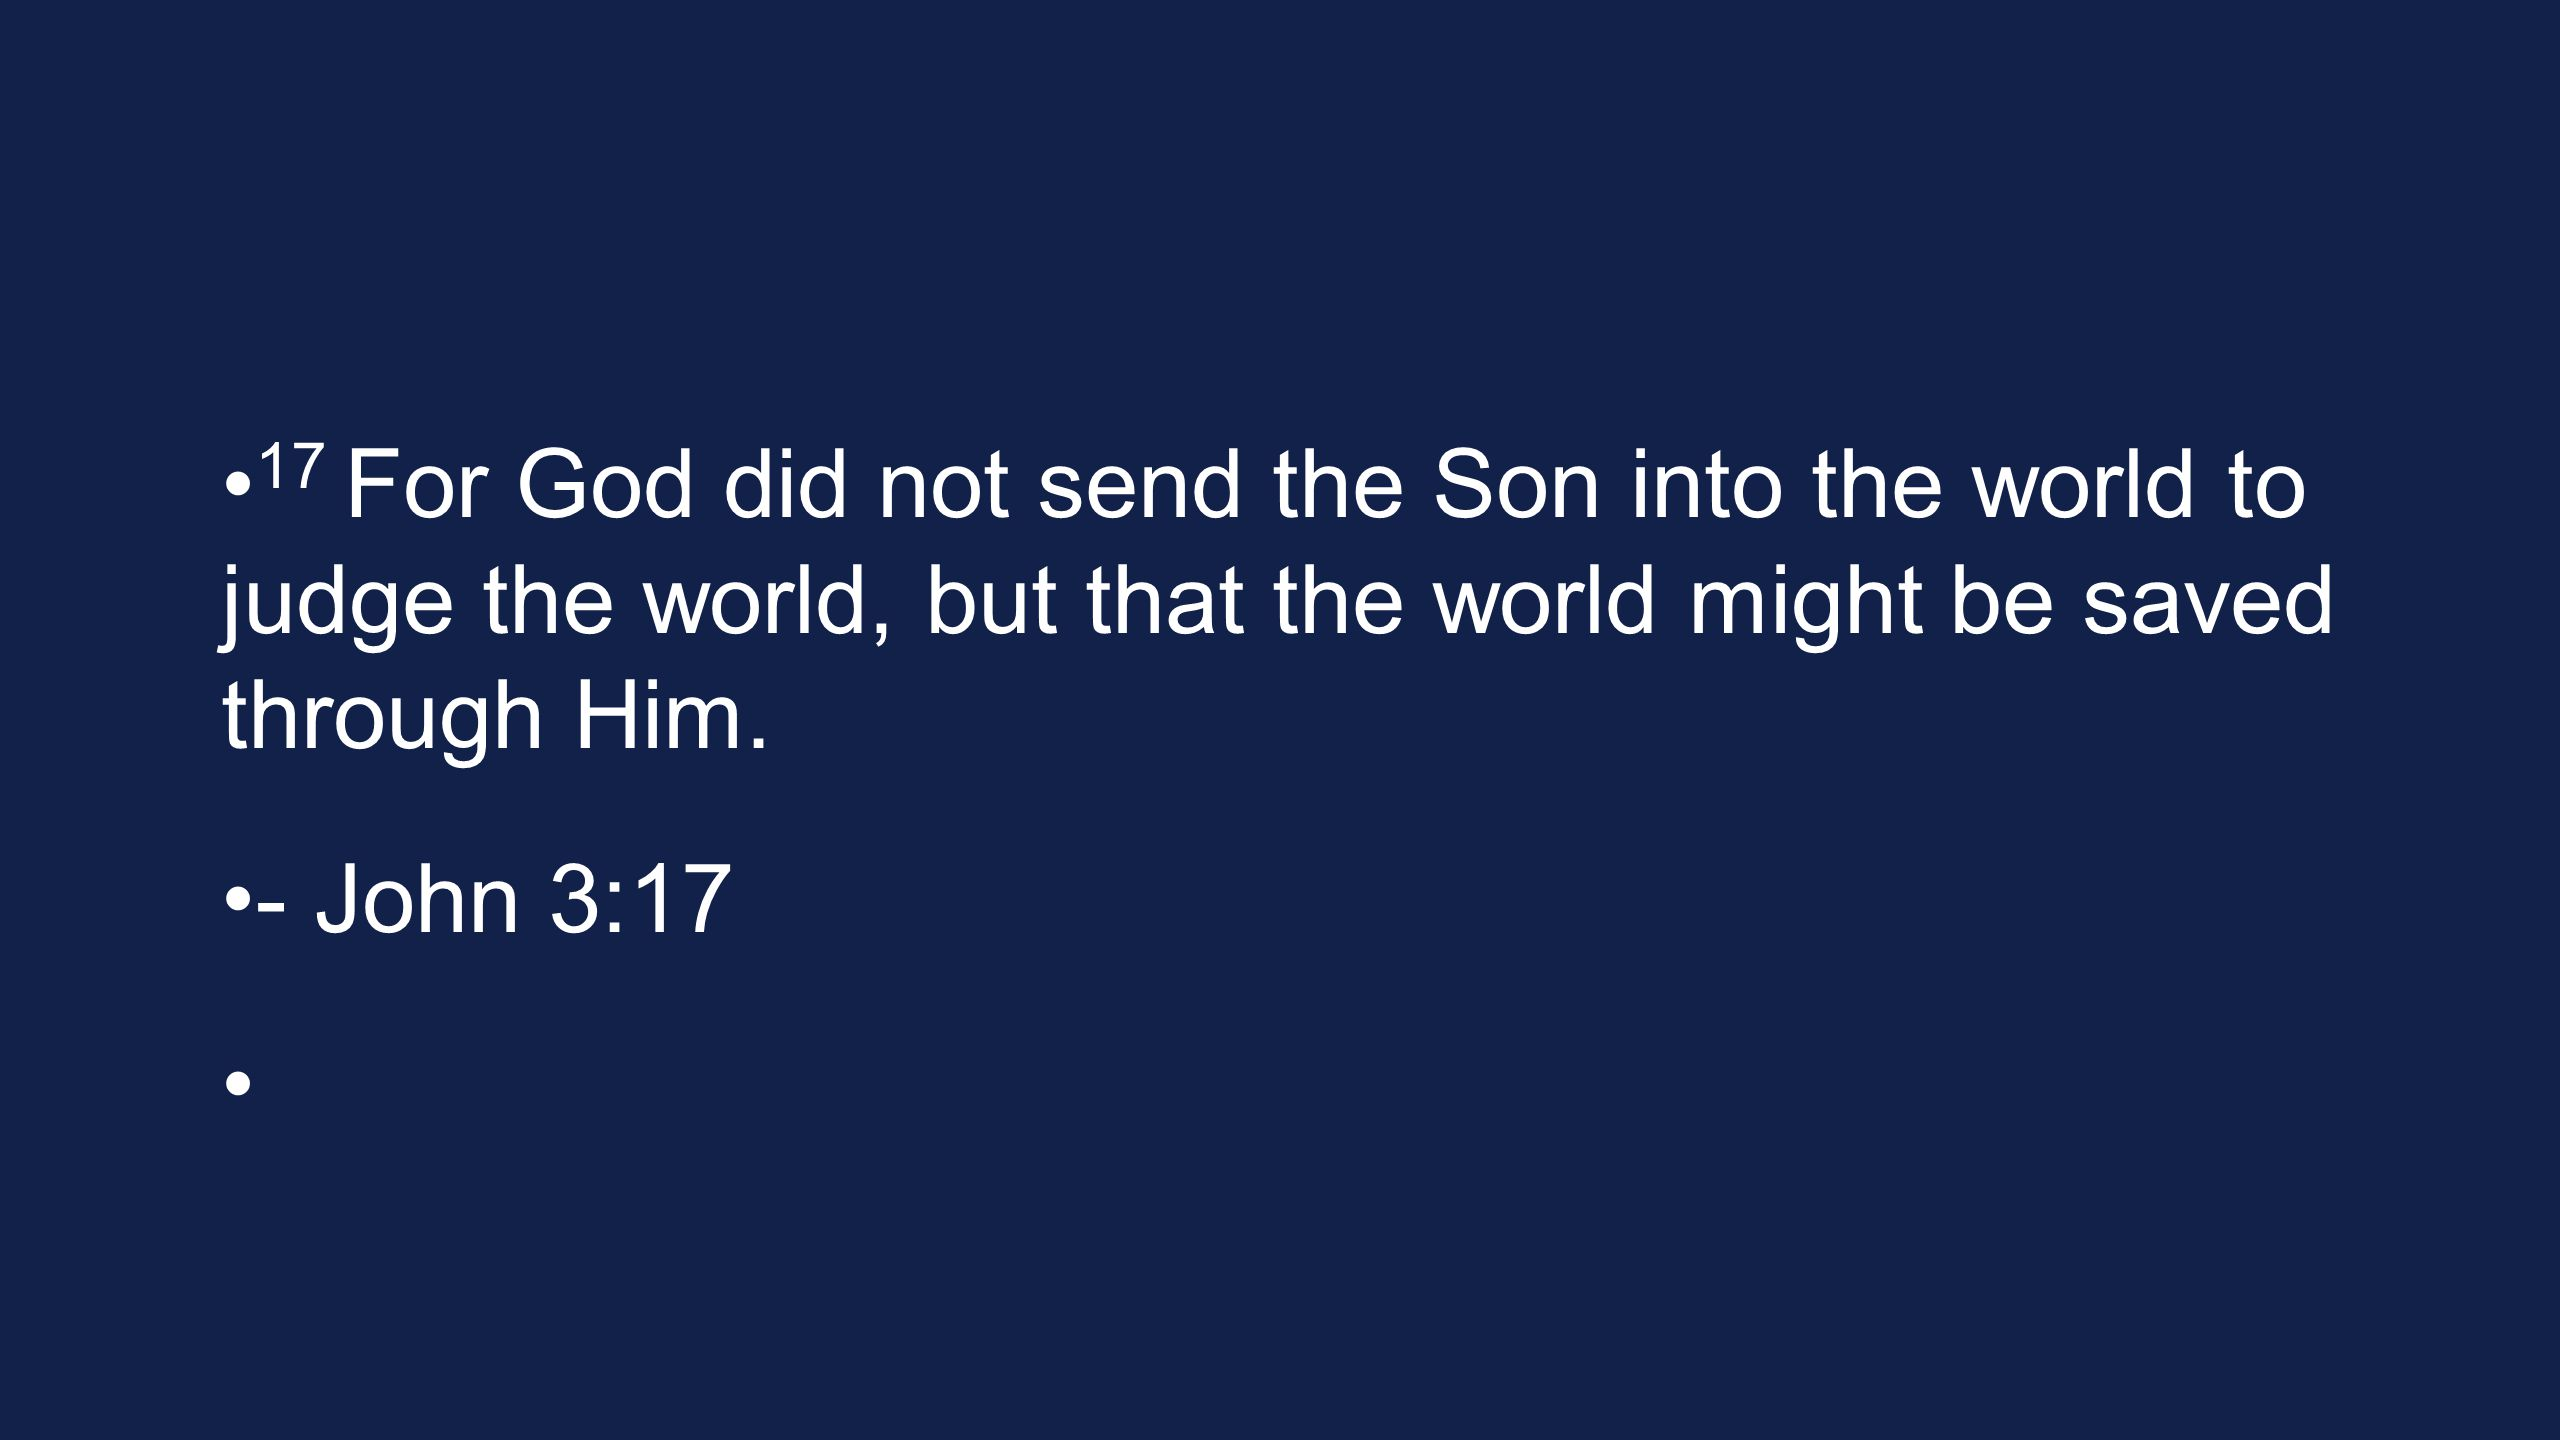 17 For God did not send the Son into the world to judge the world, but that the world might be saved through Him.